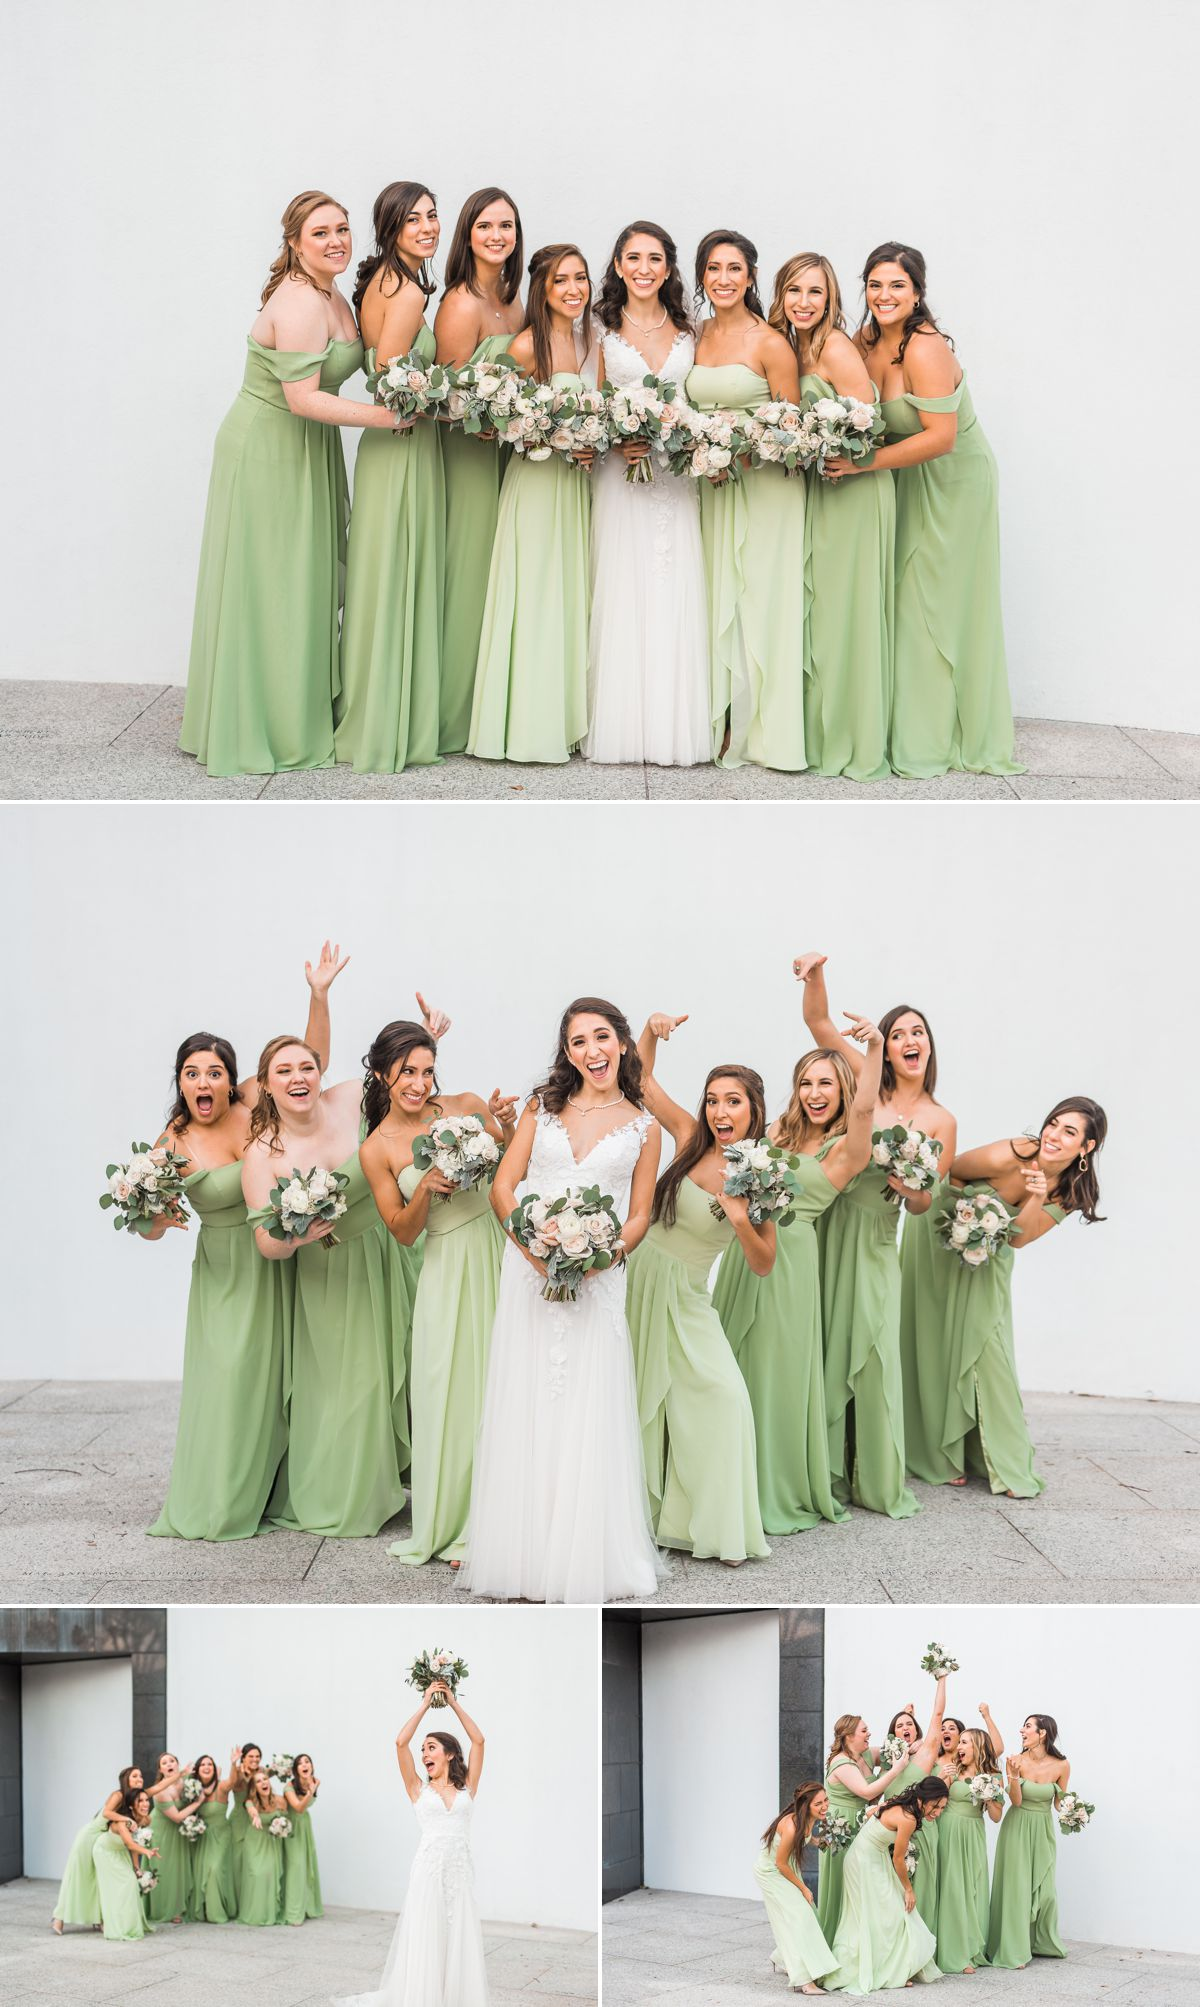 Bride and Bridesmaids Chapel St. Basil & Station 3 Wedding in Houston